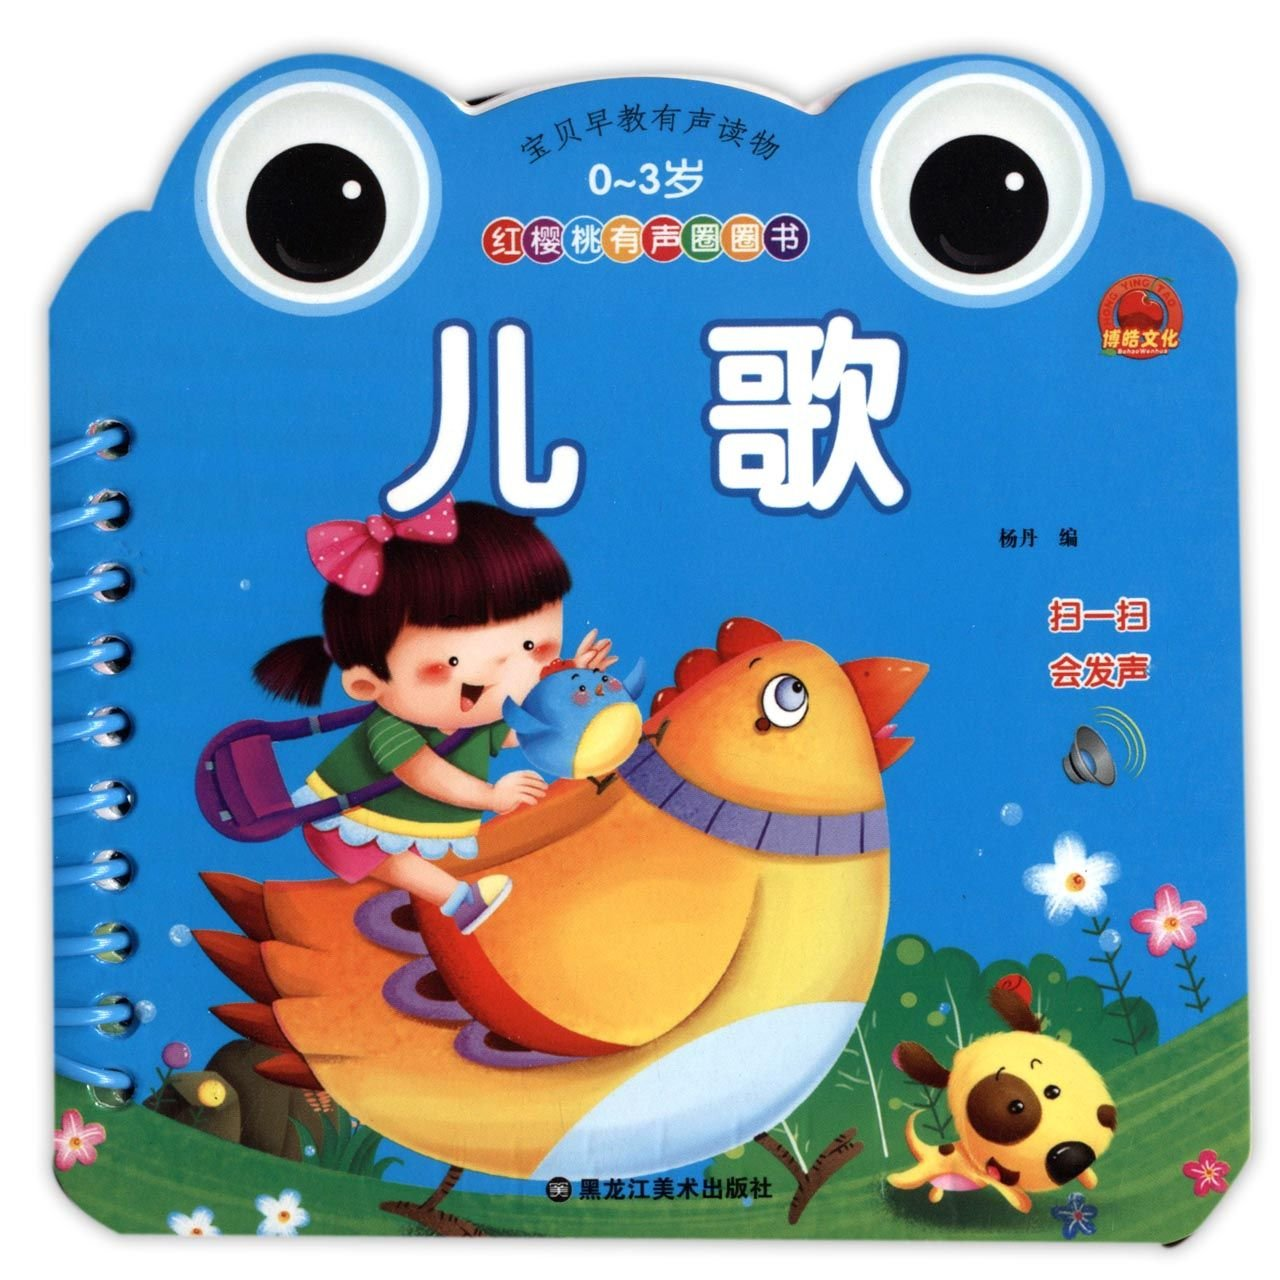 Download Red Cherry Audio Books: Nursery Rhymes (0-3 Year Old) (Chinese Edition) pdf